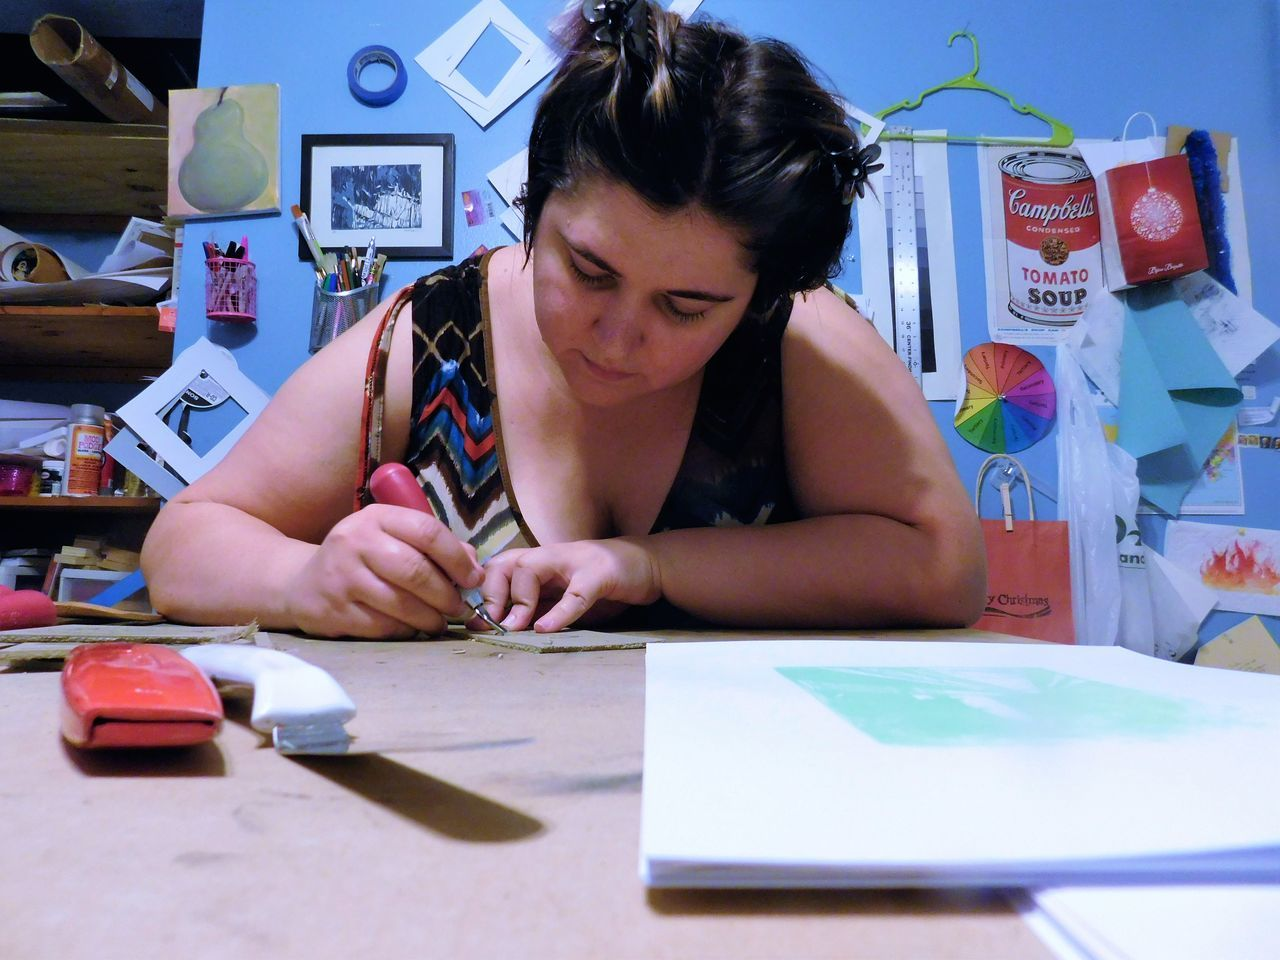 Artist Artist Studio Artistic Expression Creativity EyeEm Colorful ArtWork Art, Drawing, Creativity Art And Craft Artistic TALENTED PEOPLE Talent Young Woman Creating Art Inspiration Wall Design Sketches Wall Of Art Businesswoman Artistic Eye Artist At Work Small Business